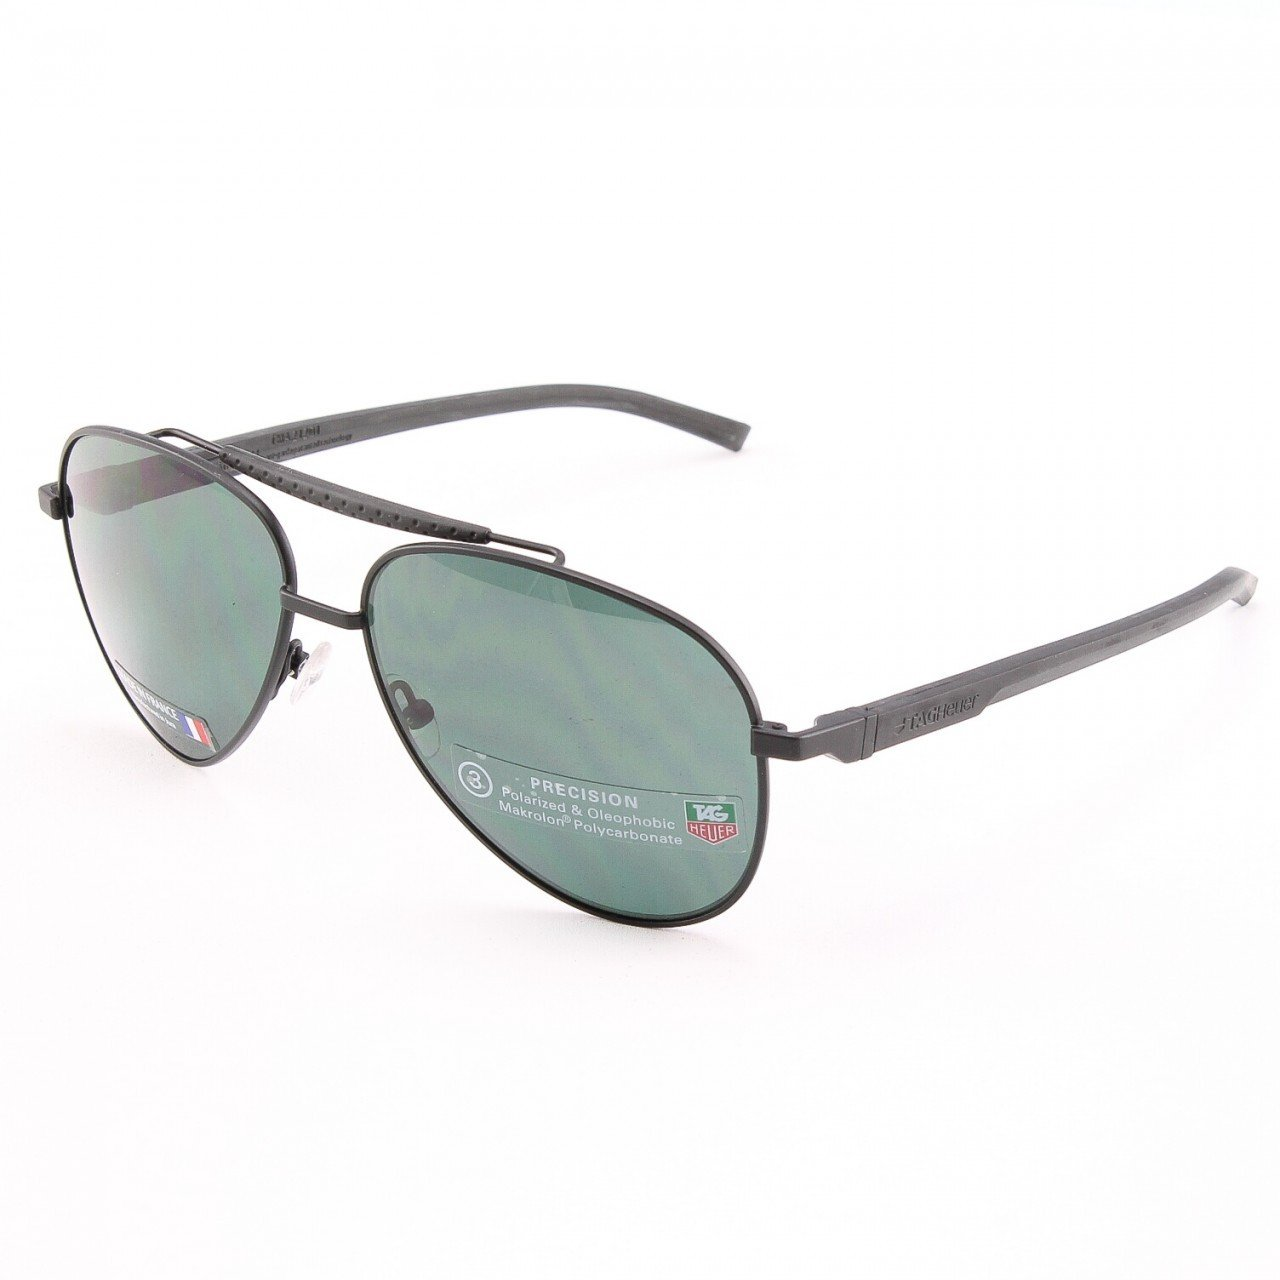 TAG Heuer 881 Men's Sunglasses Col. 311 Black with Green Polarized Lenses